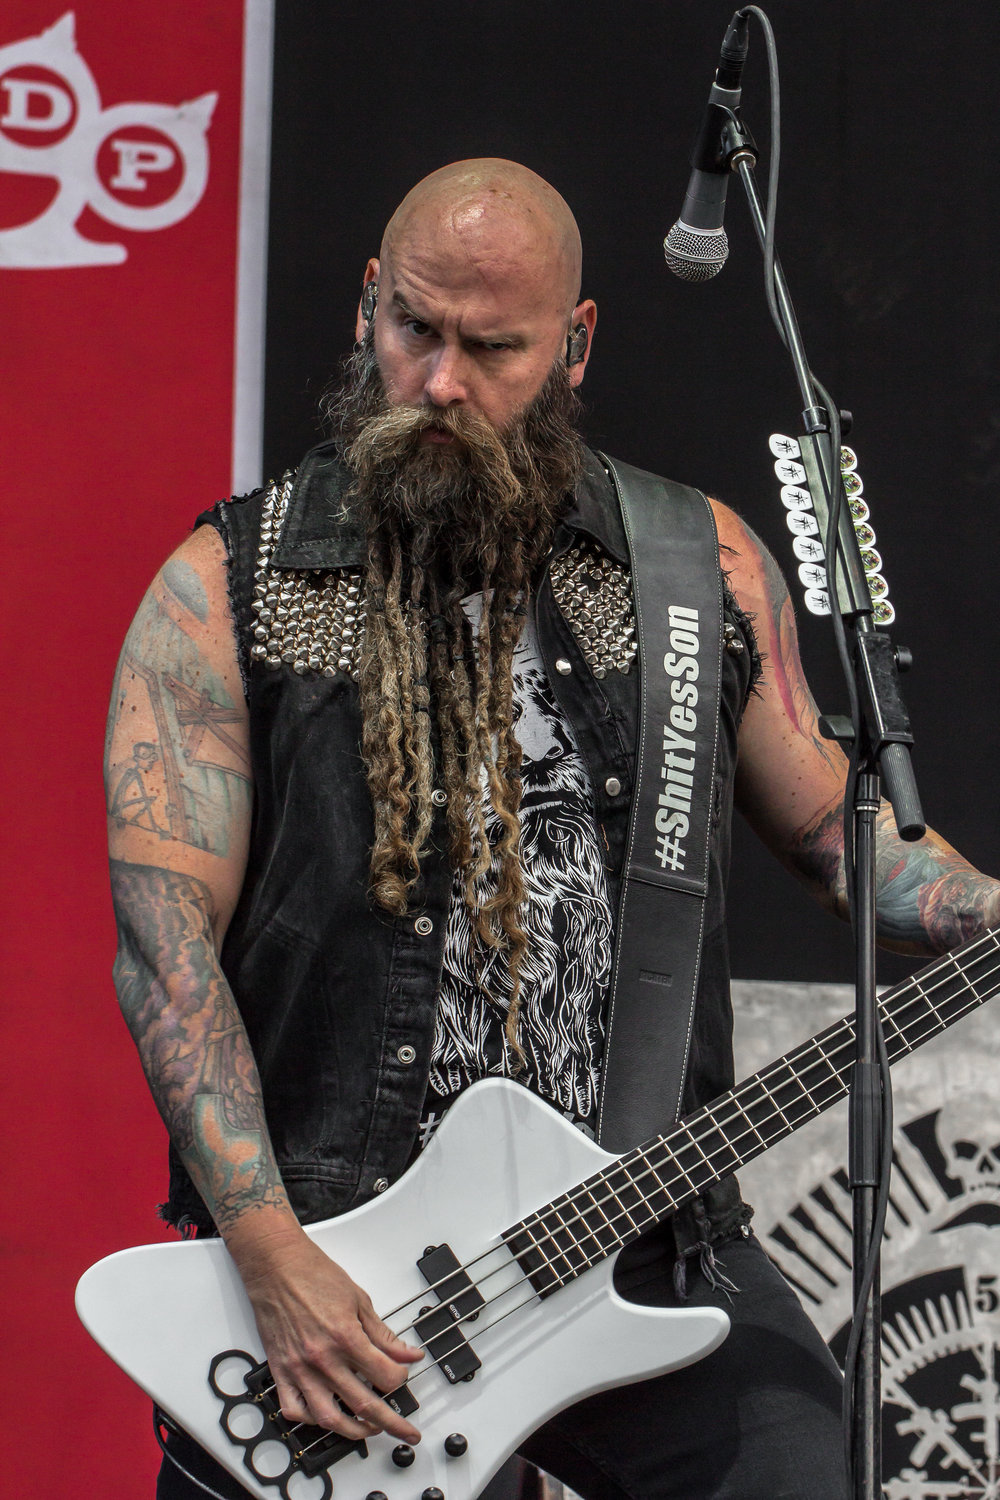 five finger death punch_0238.jpg